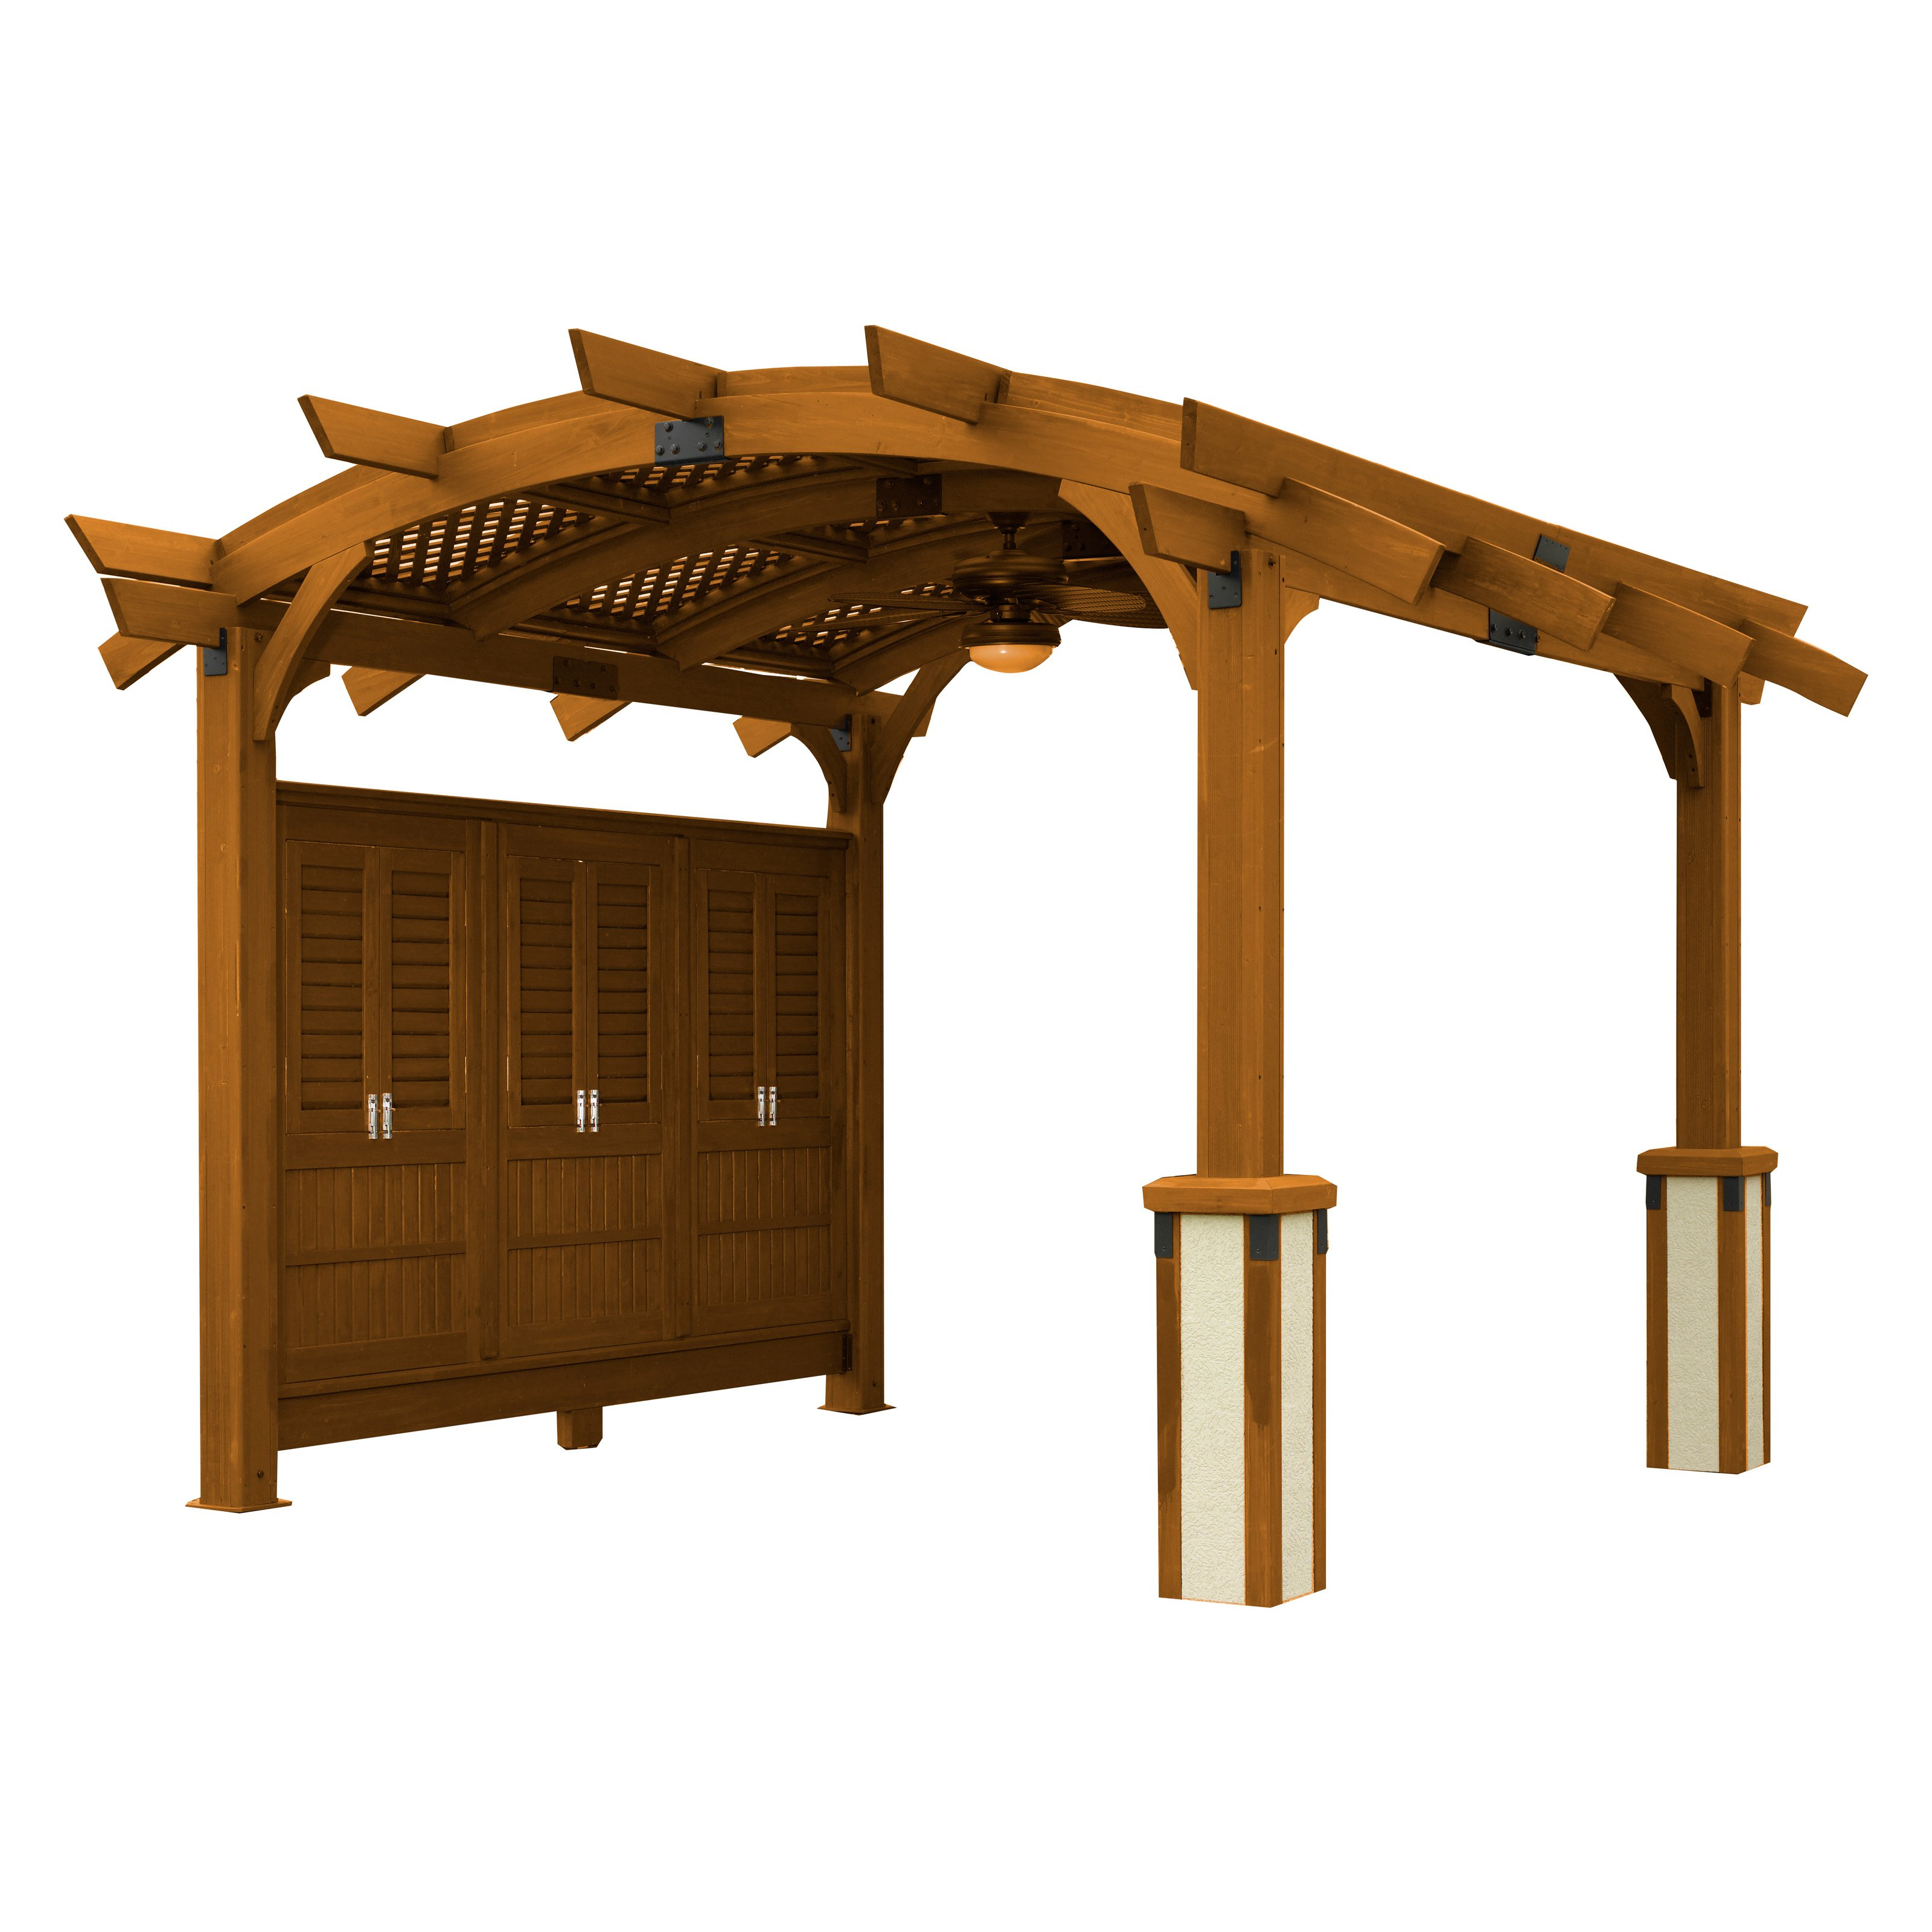 Sonoma 12 x 12 ft. Arched Wood Pergola by Outdoor GreatRoom Company LLLP